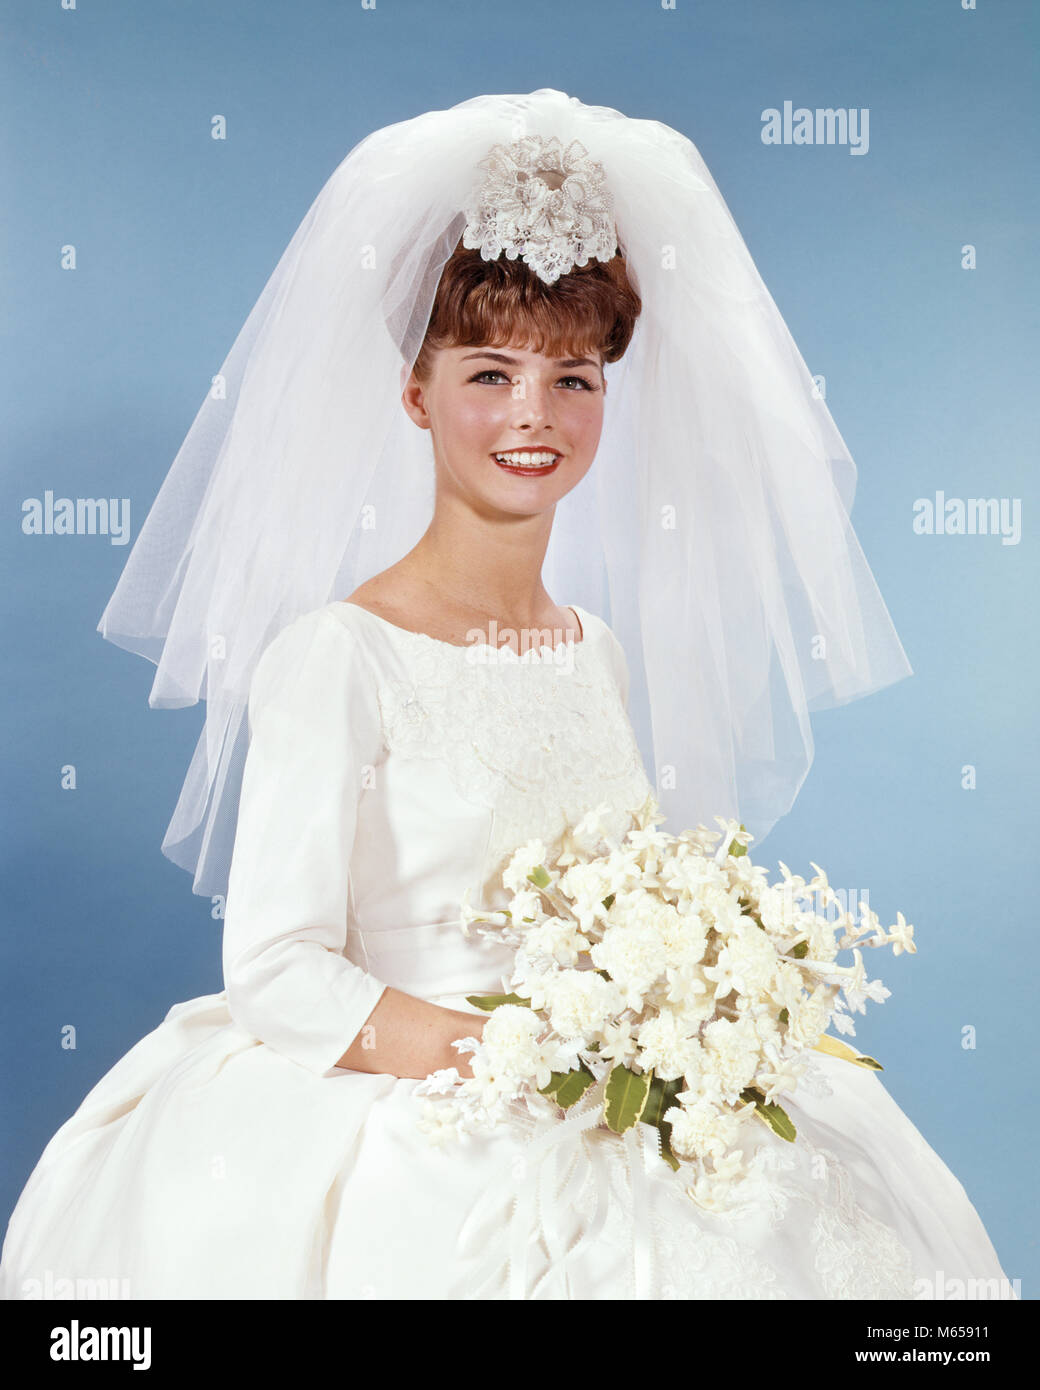 1da9d5f0e 1960s PORTRAIT SMILING WOMAN BRIDE IN SIMPLE WHITE WEDDING GOWN HOLDING  WHITE FLOWER BOUQUET LOOKING AT CAMERA - kb5240 HAR001 HARS COPY SPACE  HALF-LENGTH ...